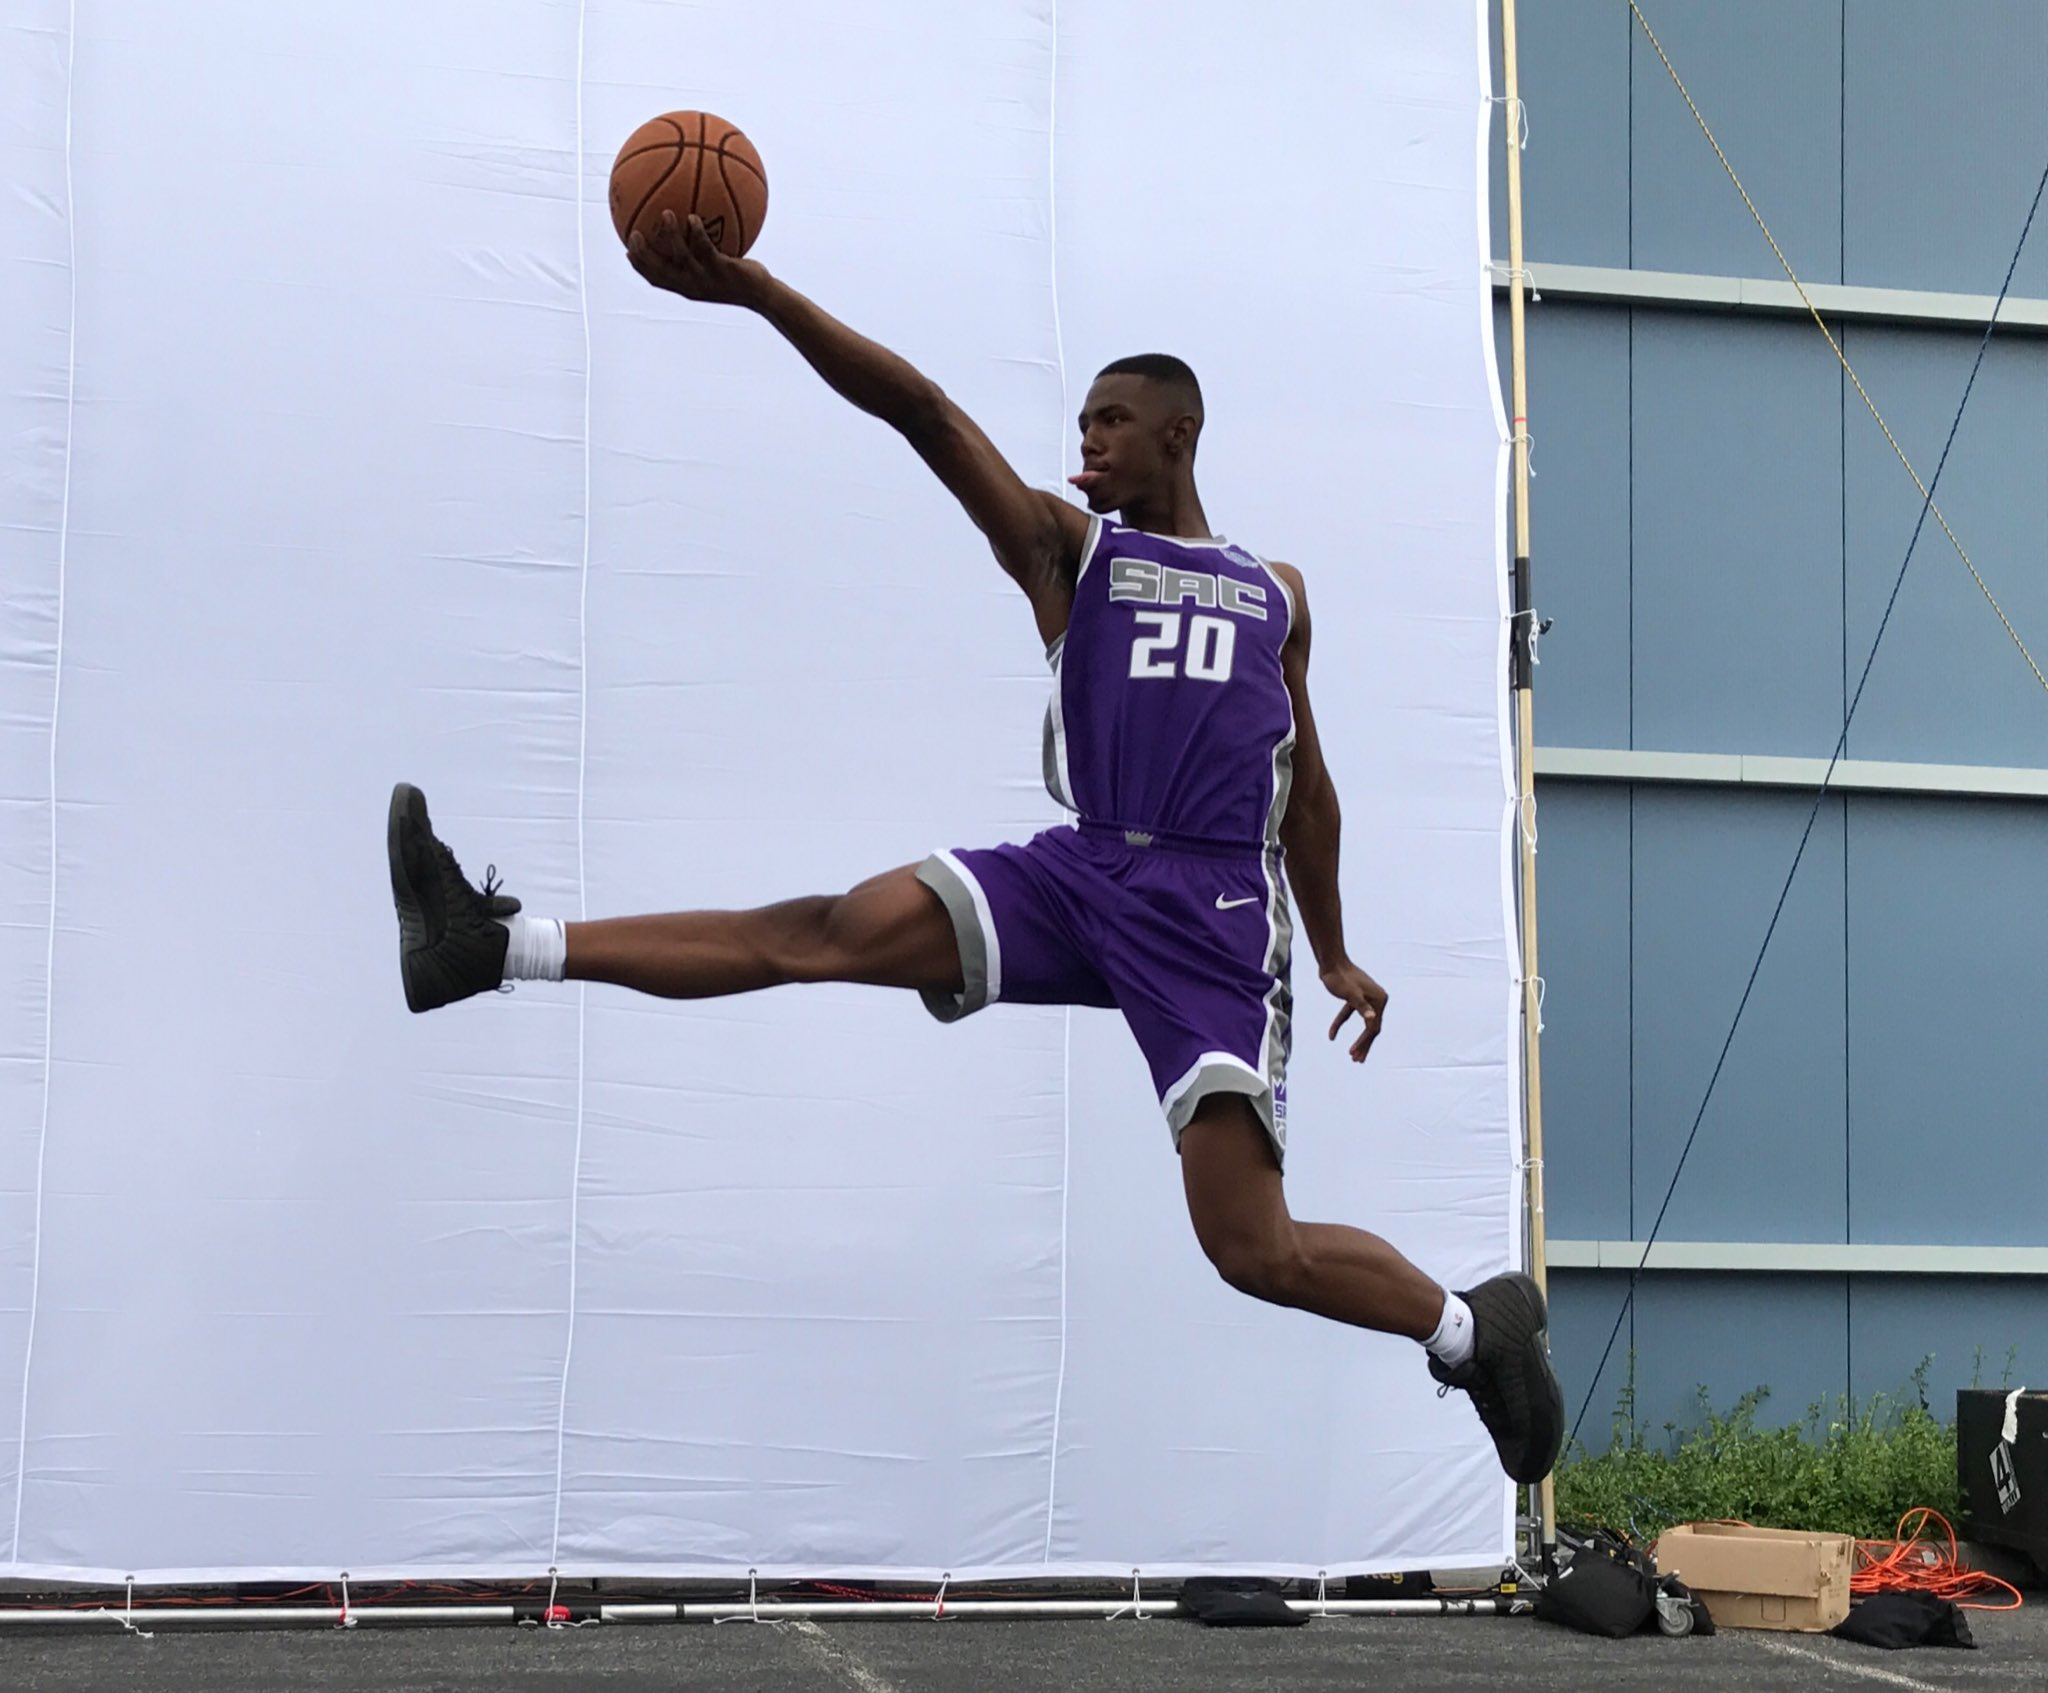 The @SacramentoKings' @HGizzle1 gets UP for his #PaniniNBARookie shoot! https://t.co/DBGYySe2m7